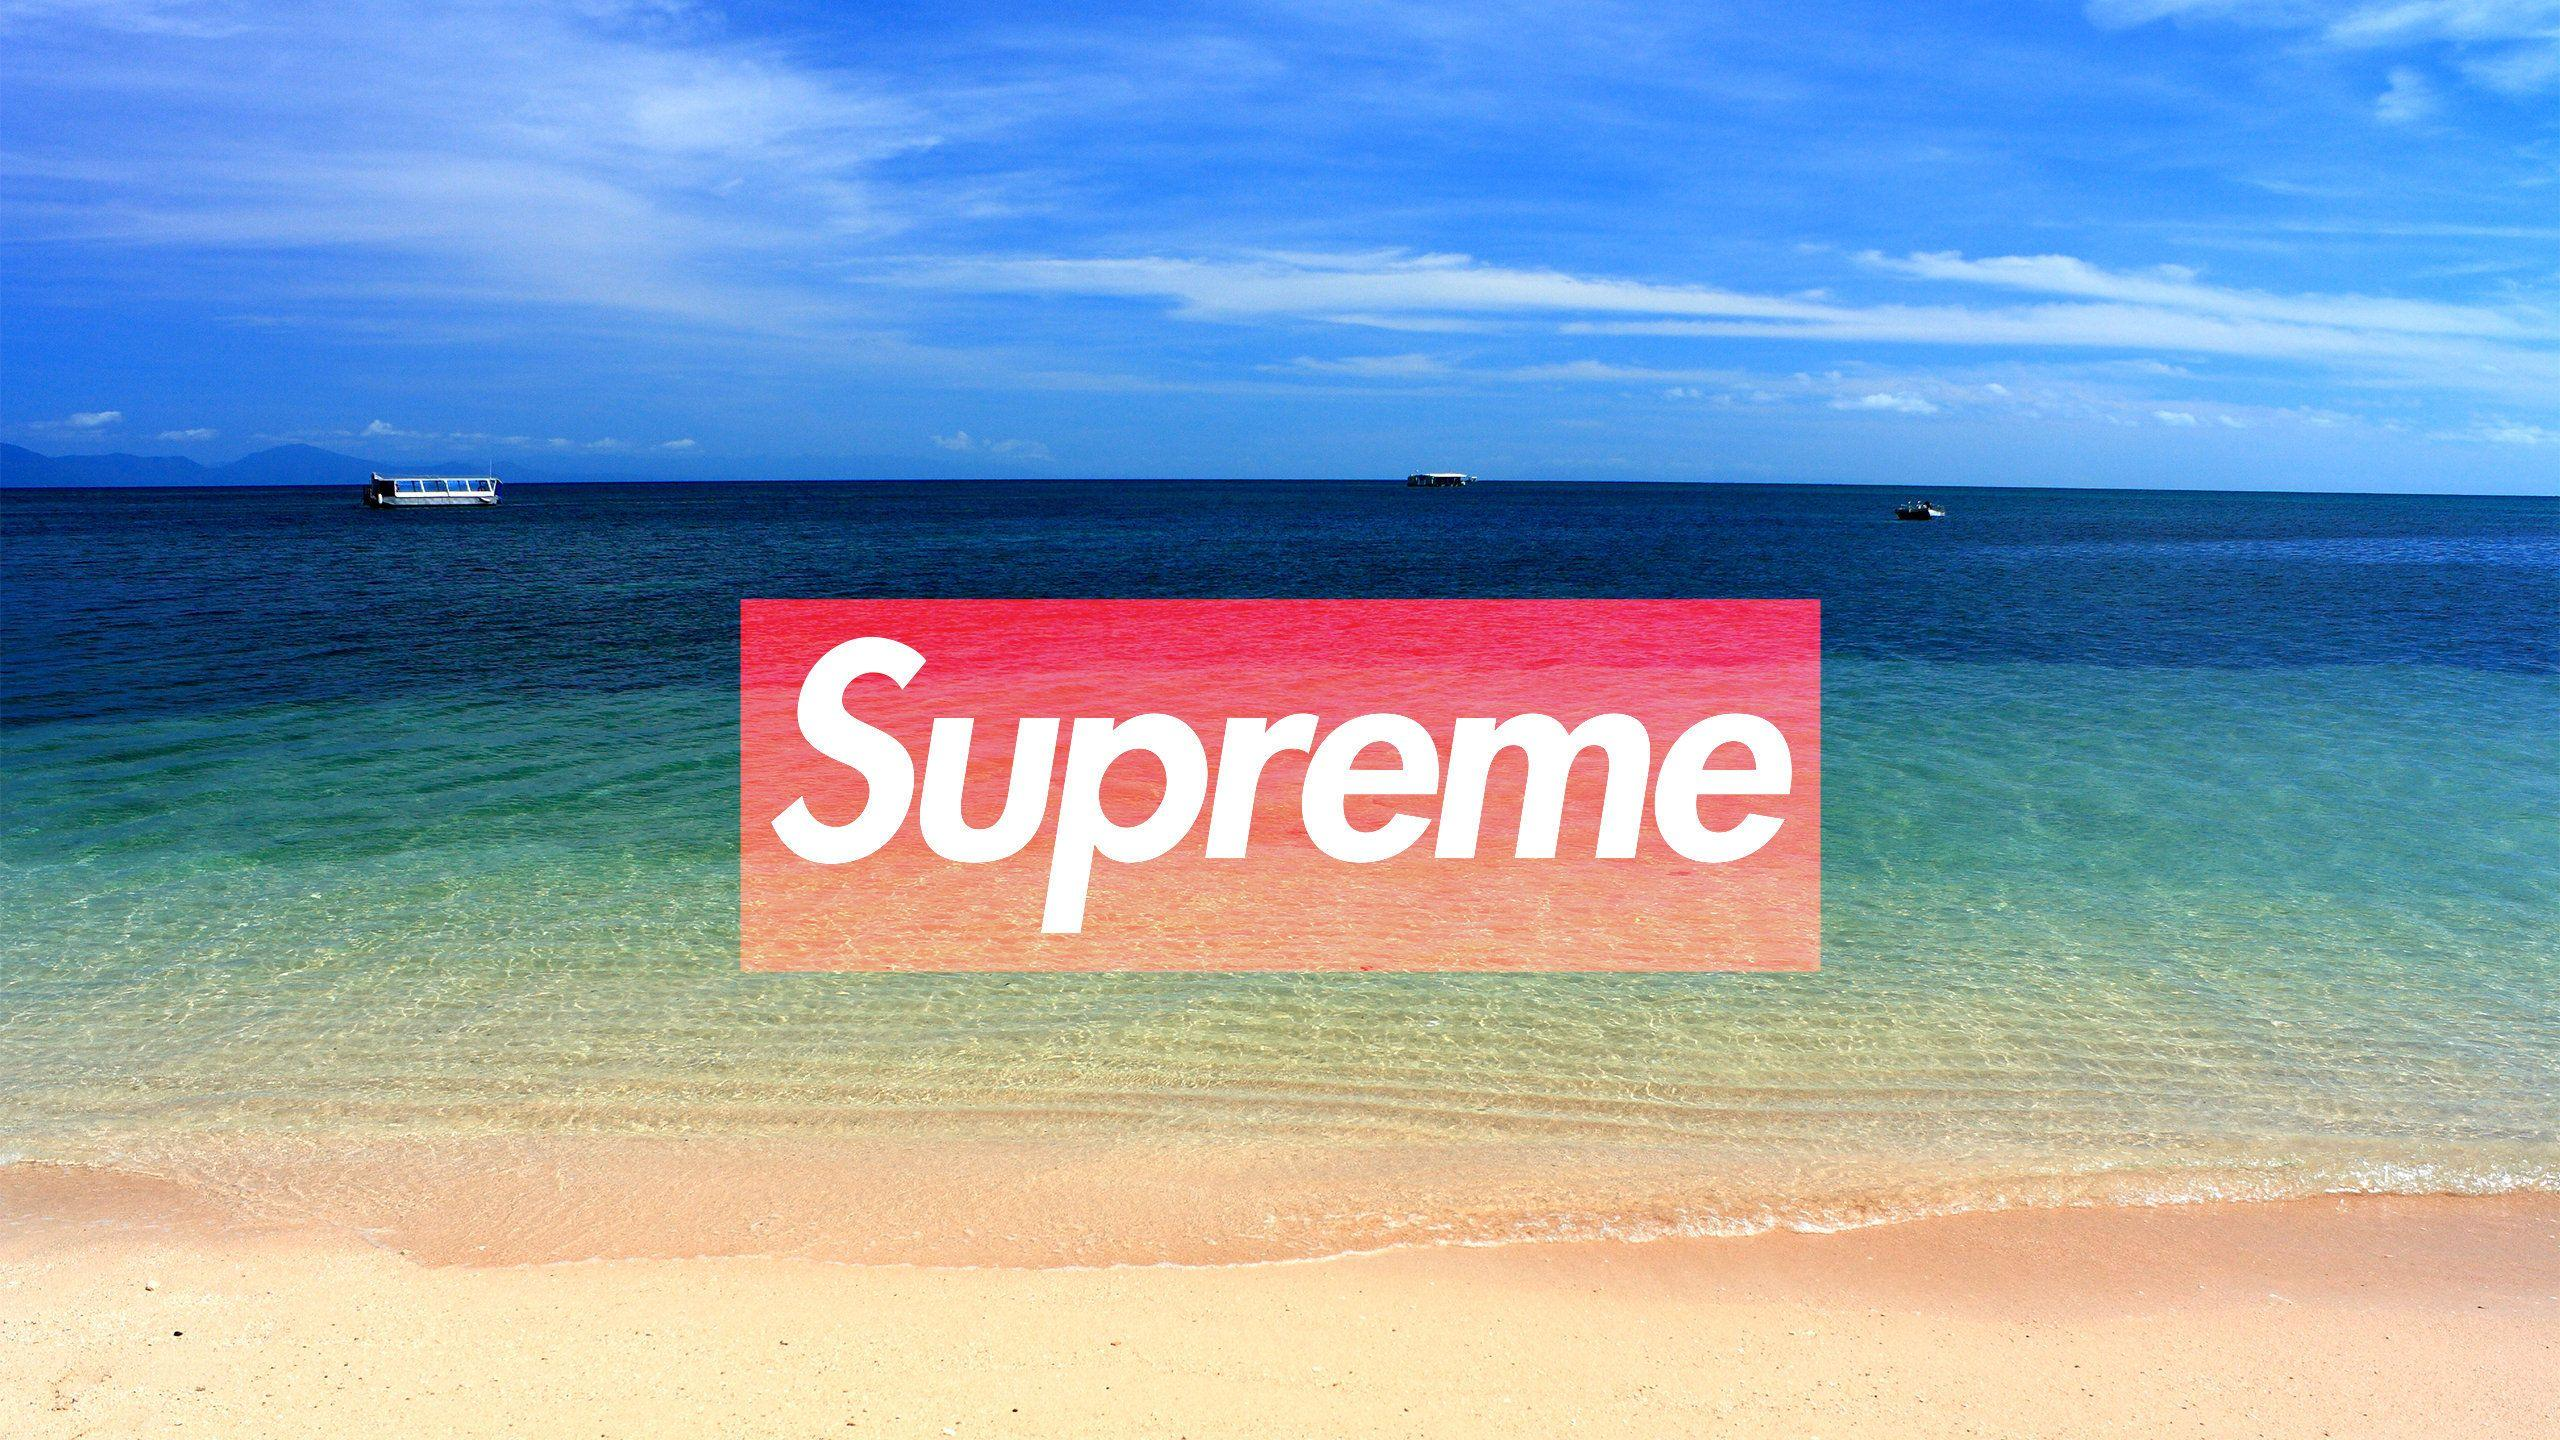 Supreme Wallpapers 2560x1440